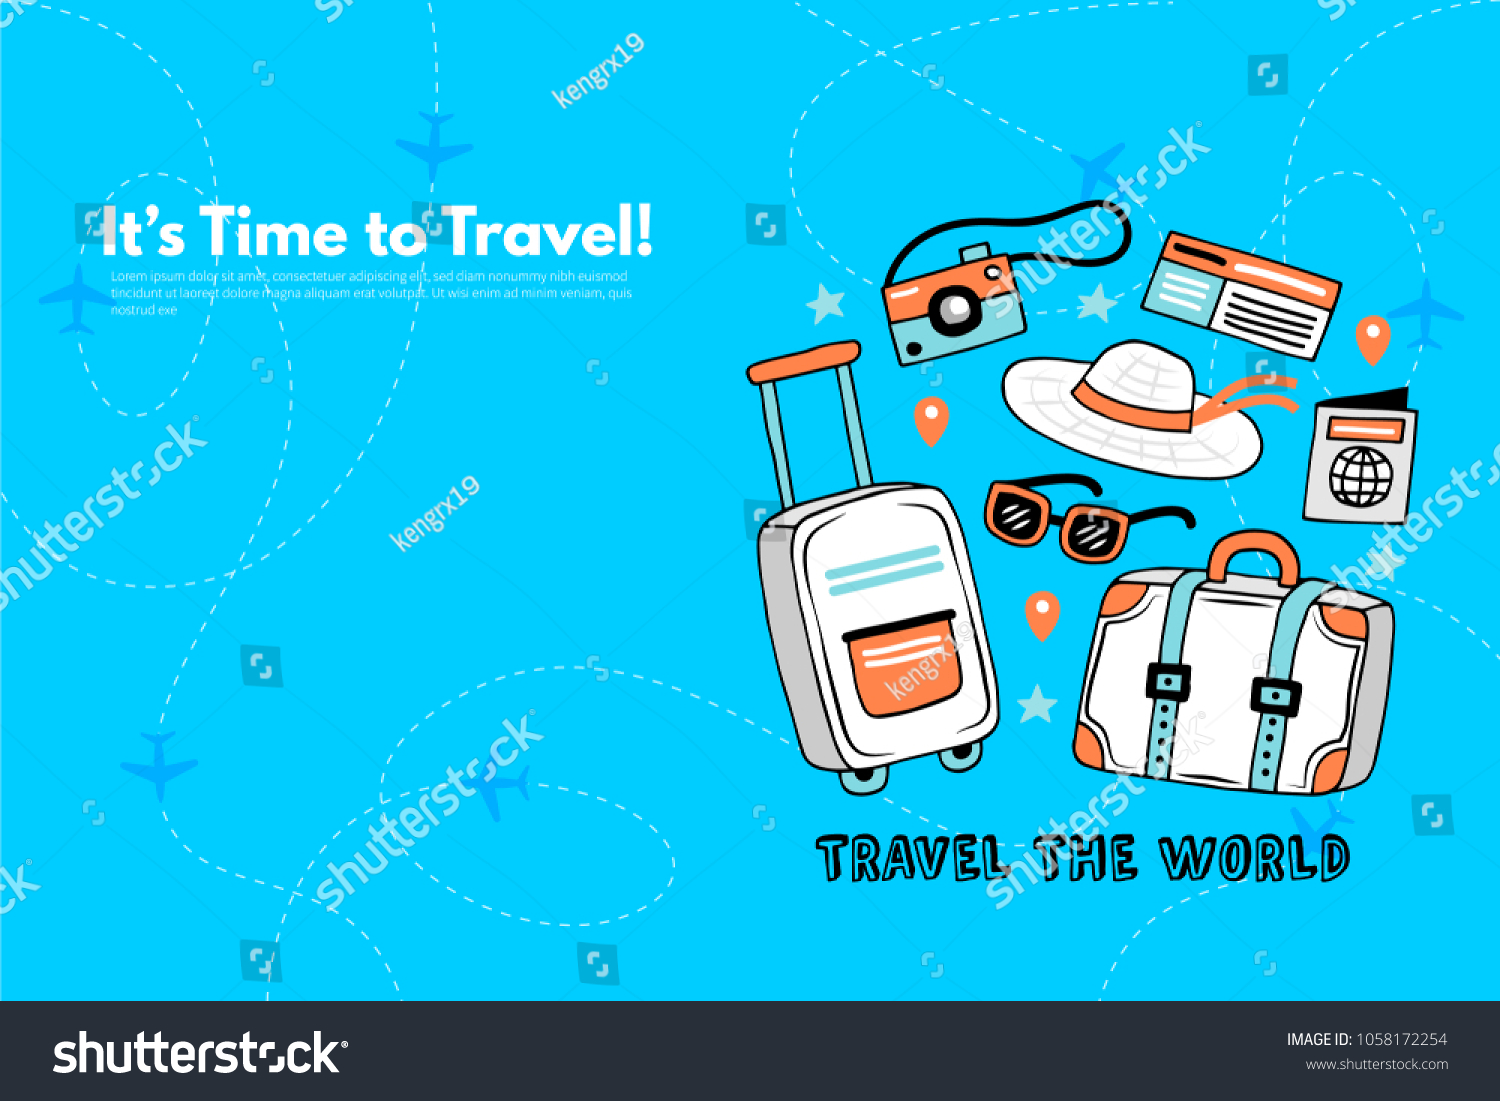 Trip Travel Time Travel Trip World Travel World Vacation Stock Vector Royalty